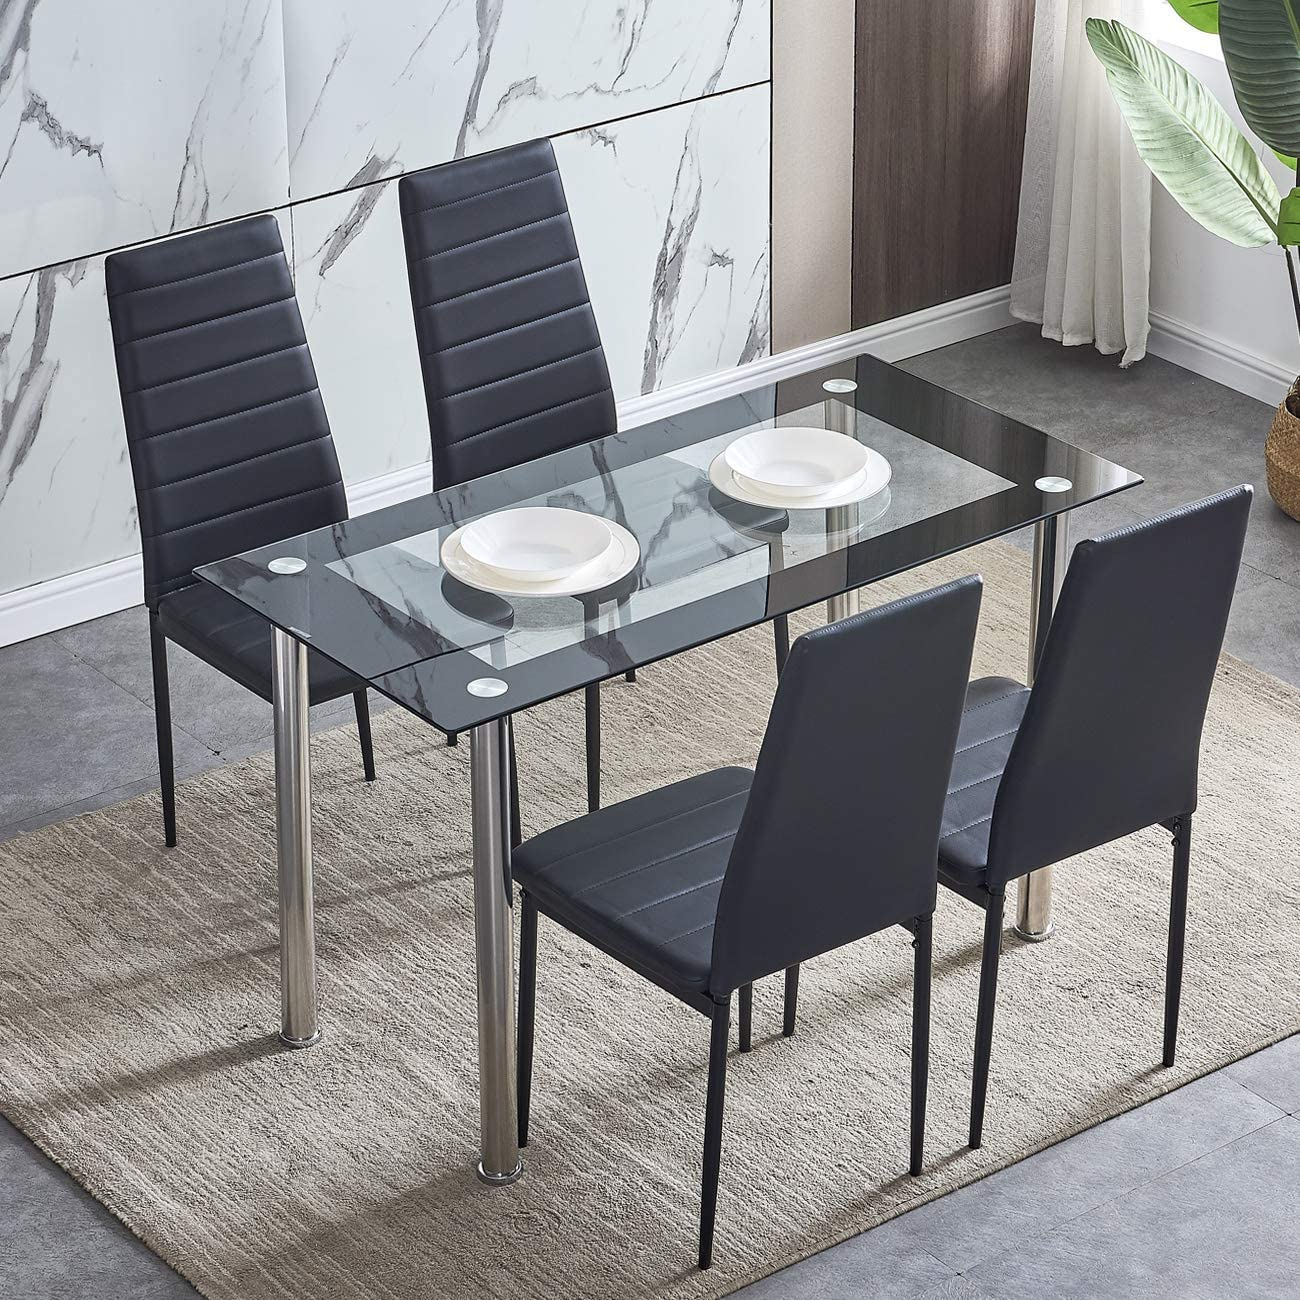 Table Only Black Leg Huisen Furniture Modern Glass Top Dining Table Kitchen Rectangular Table Metal Legs Sets Contemporary Home Living Room Table 4 6 8 People Use